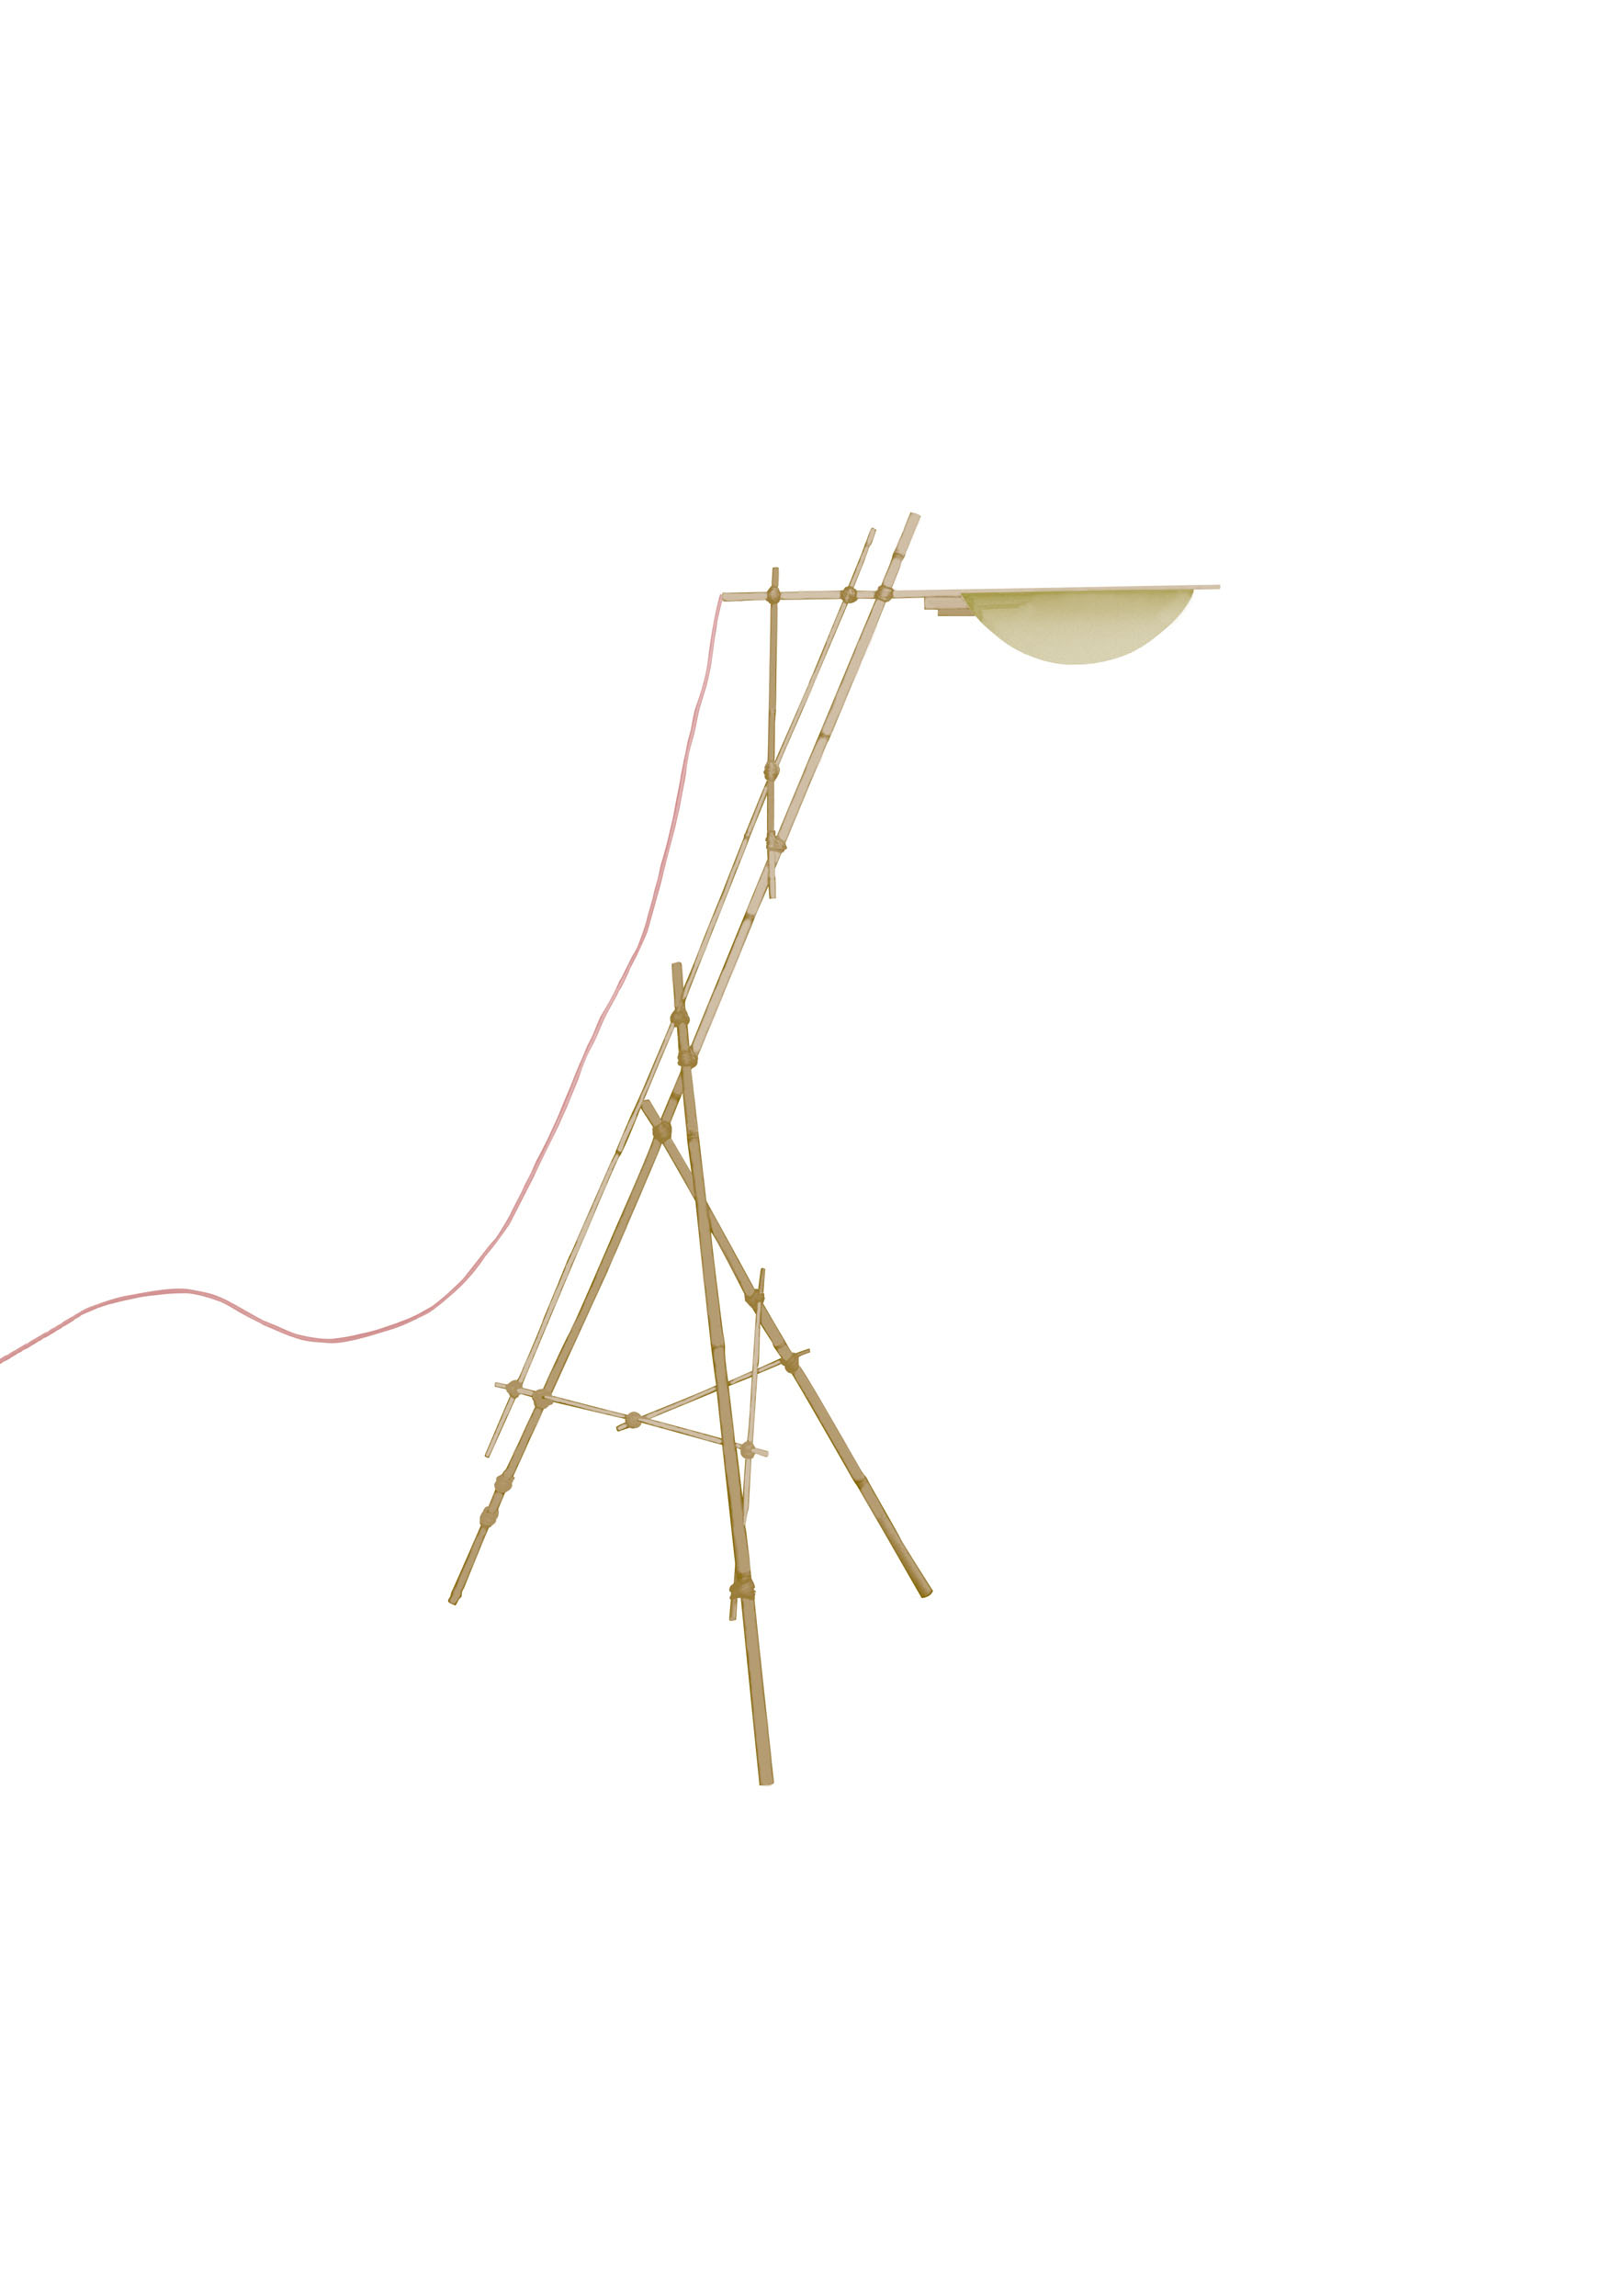 A bamboo mock up of a Les French standing light